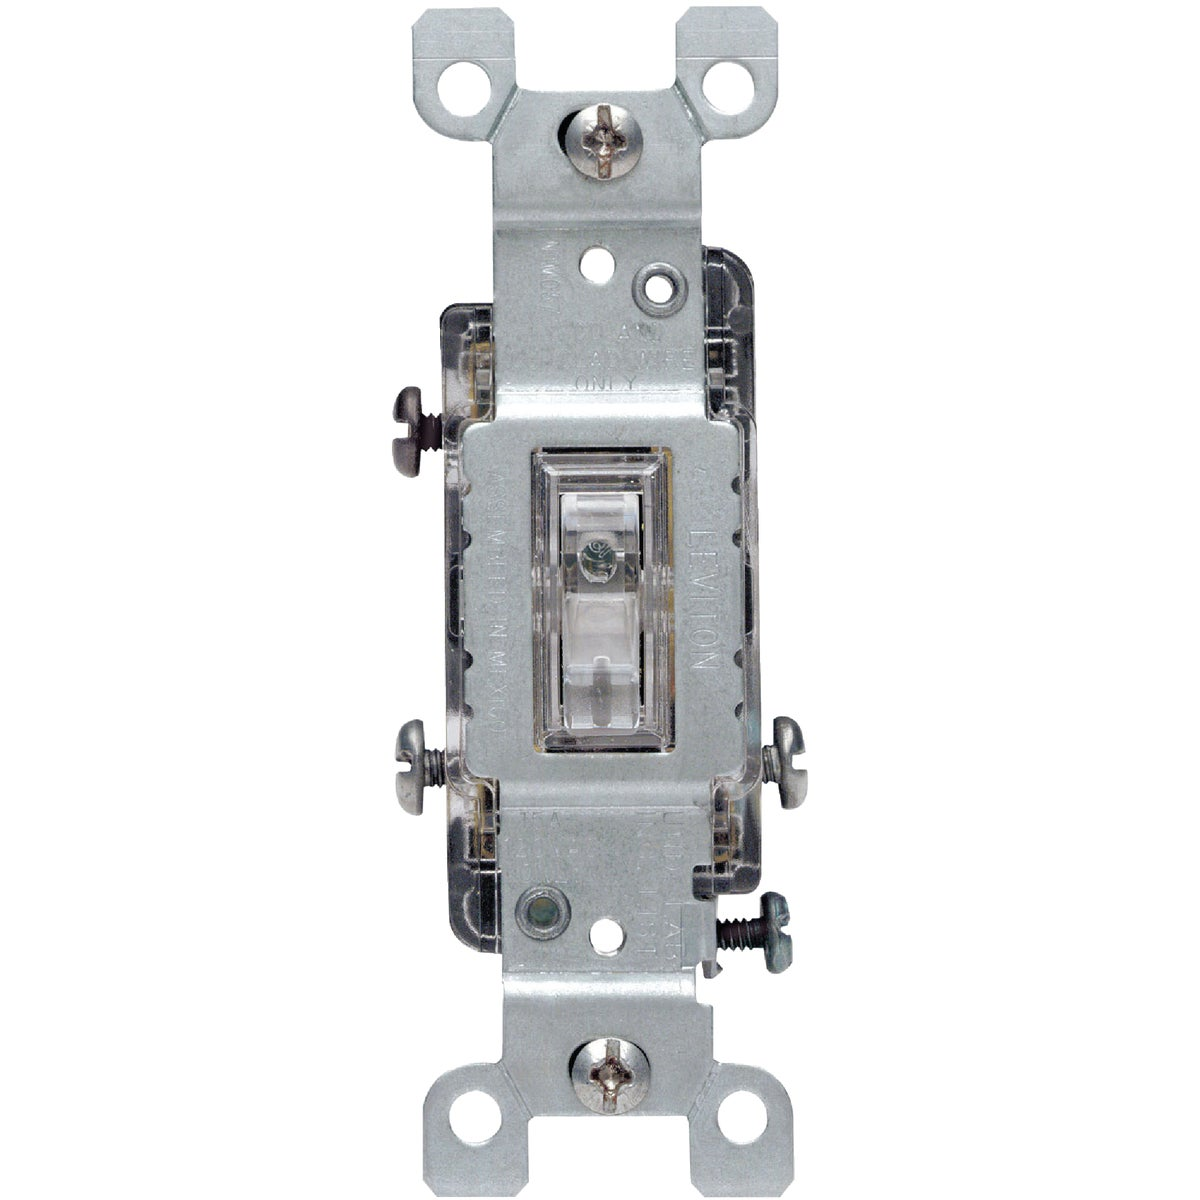 CLEAR LTD 3-WAY SWITCH - 1463-LHC by Leviton Mfg Co